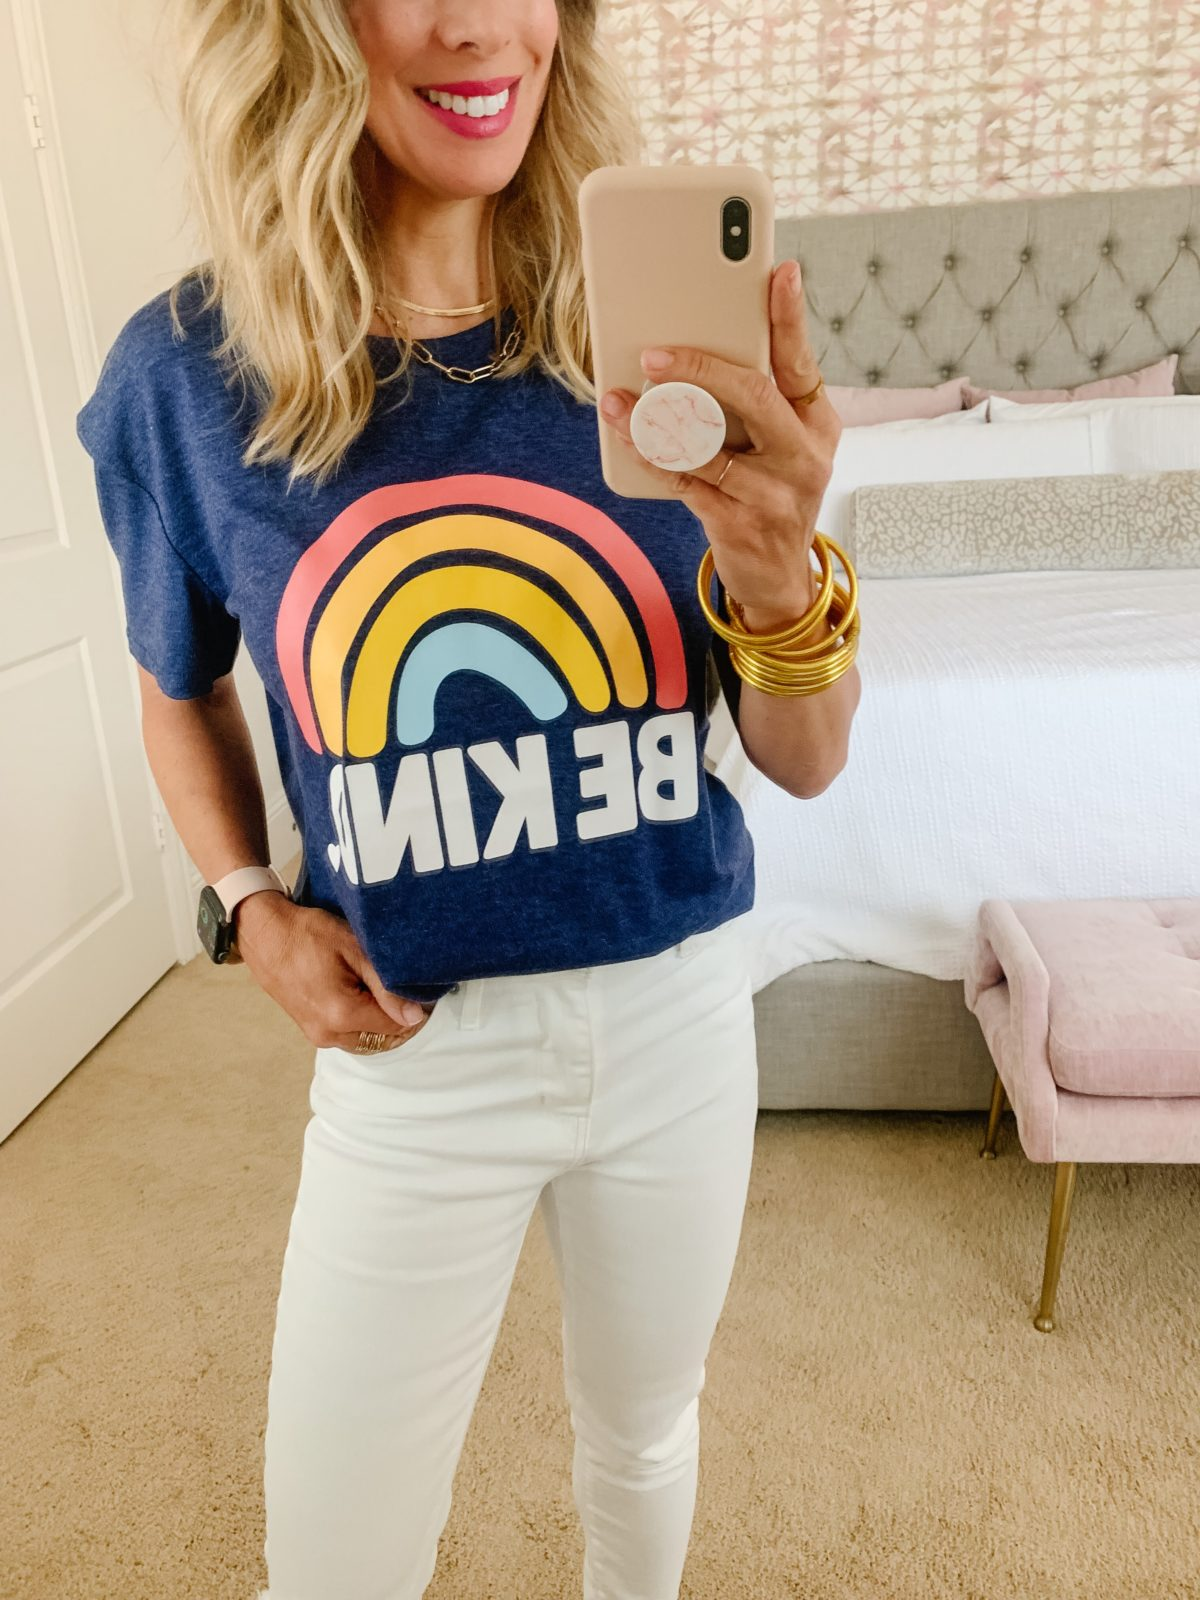 Amazon fashion - women graphic tee and jeans